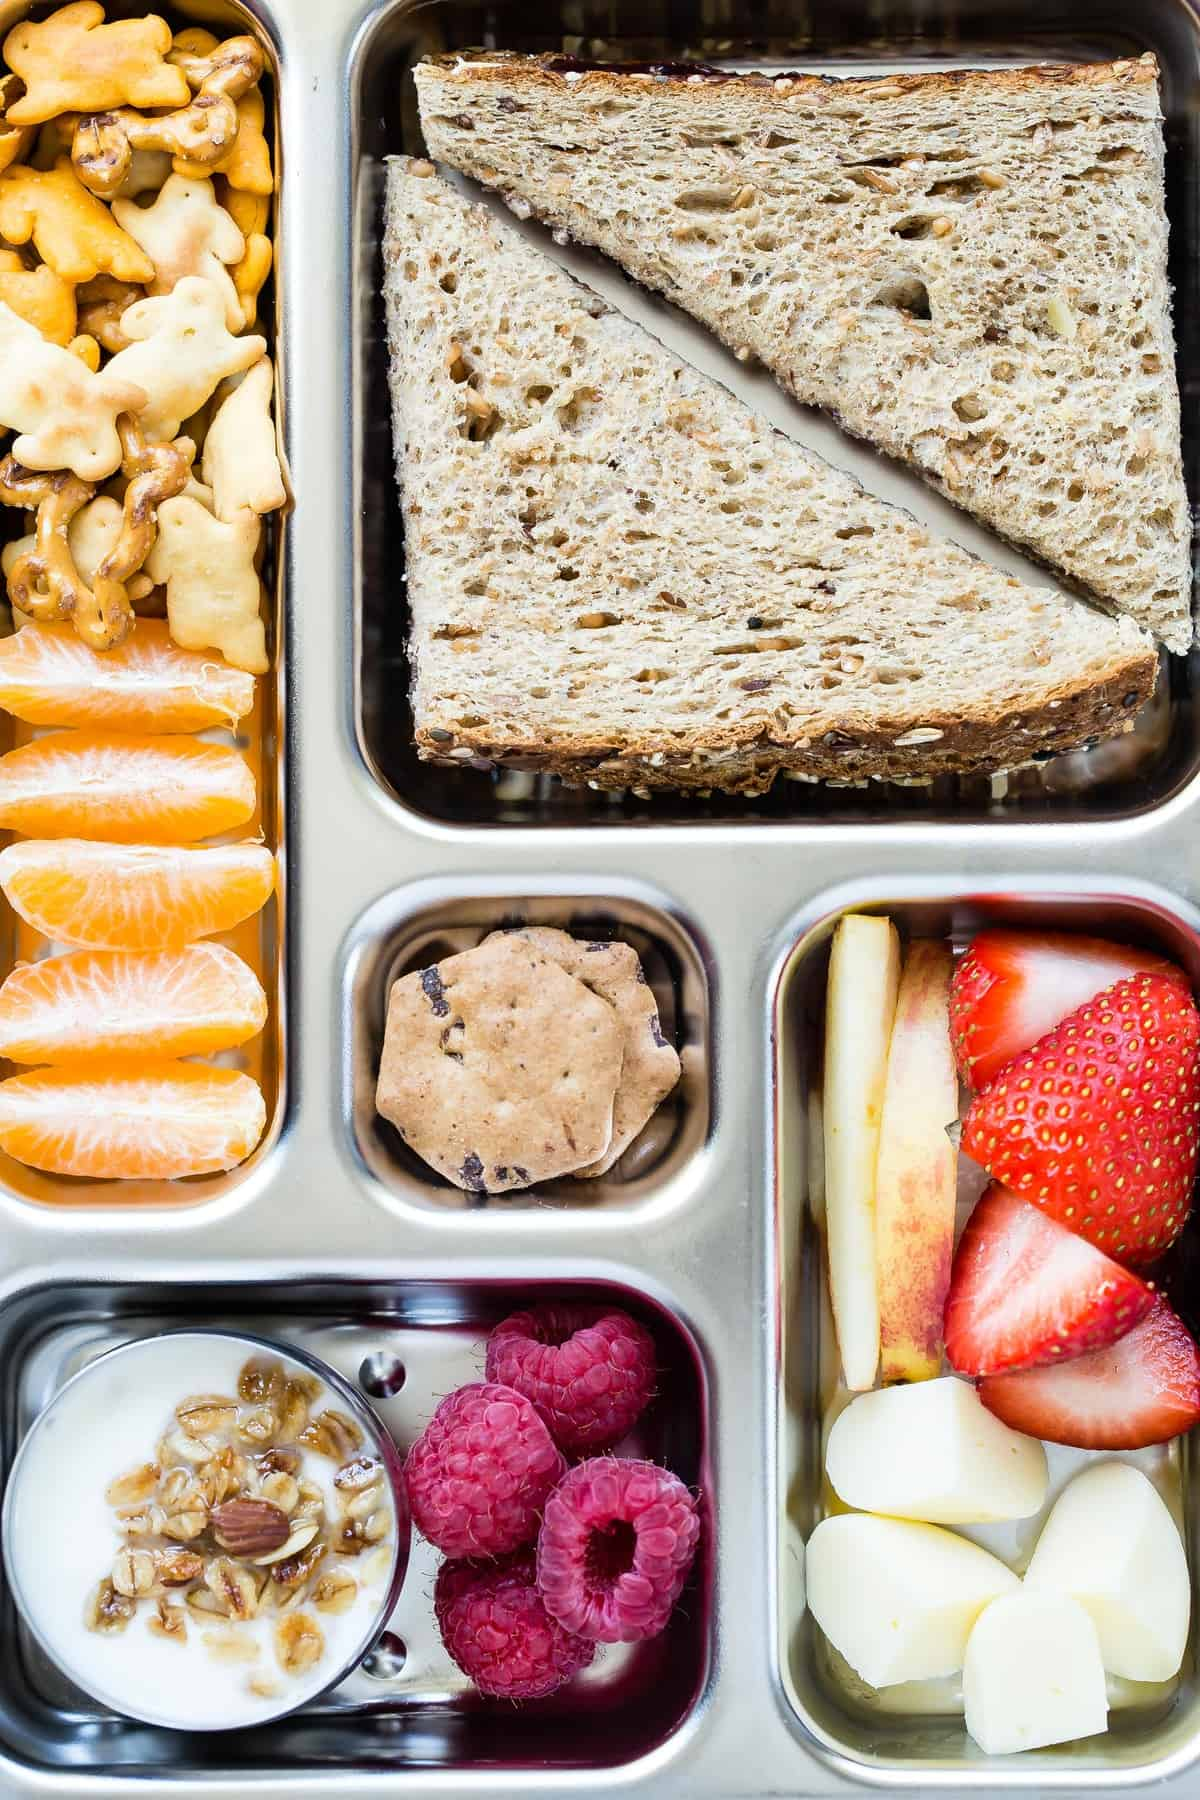 Making school lunch has never been easier with a PlanetBox lunch kit! No more messy lunch bags or using six different plastic containers to hold everything. There's so many amazing and tasty options available to fill each space.